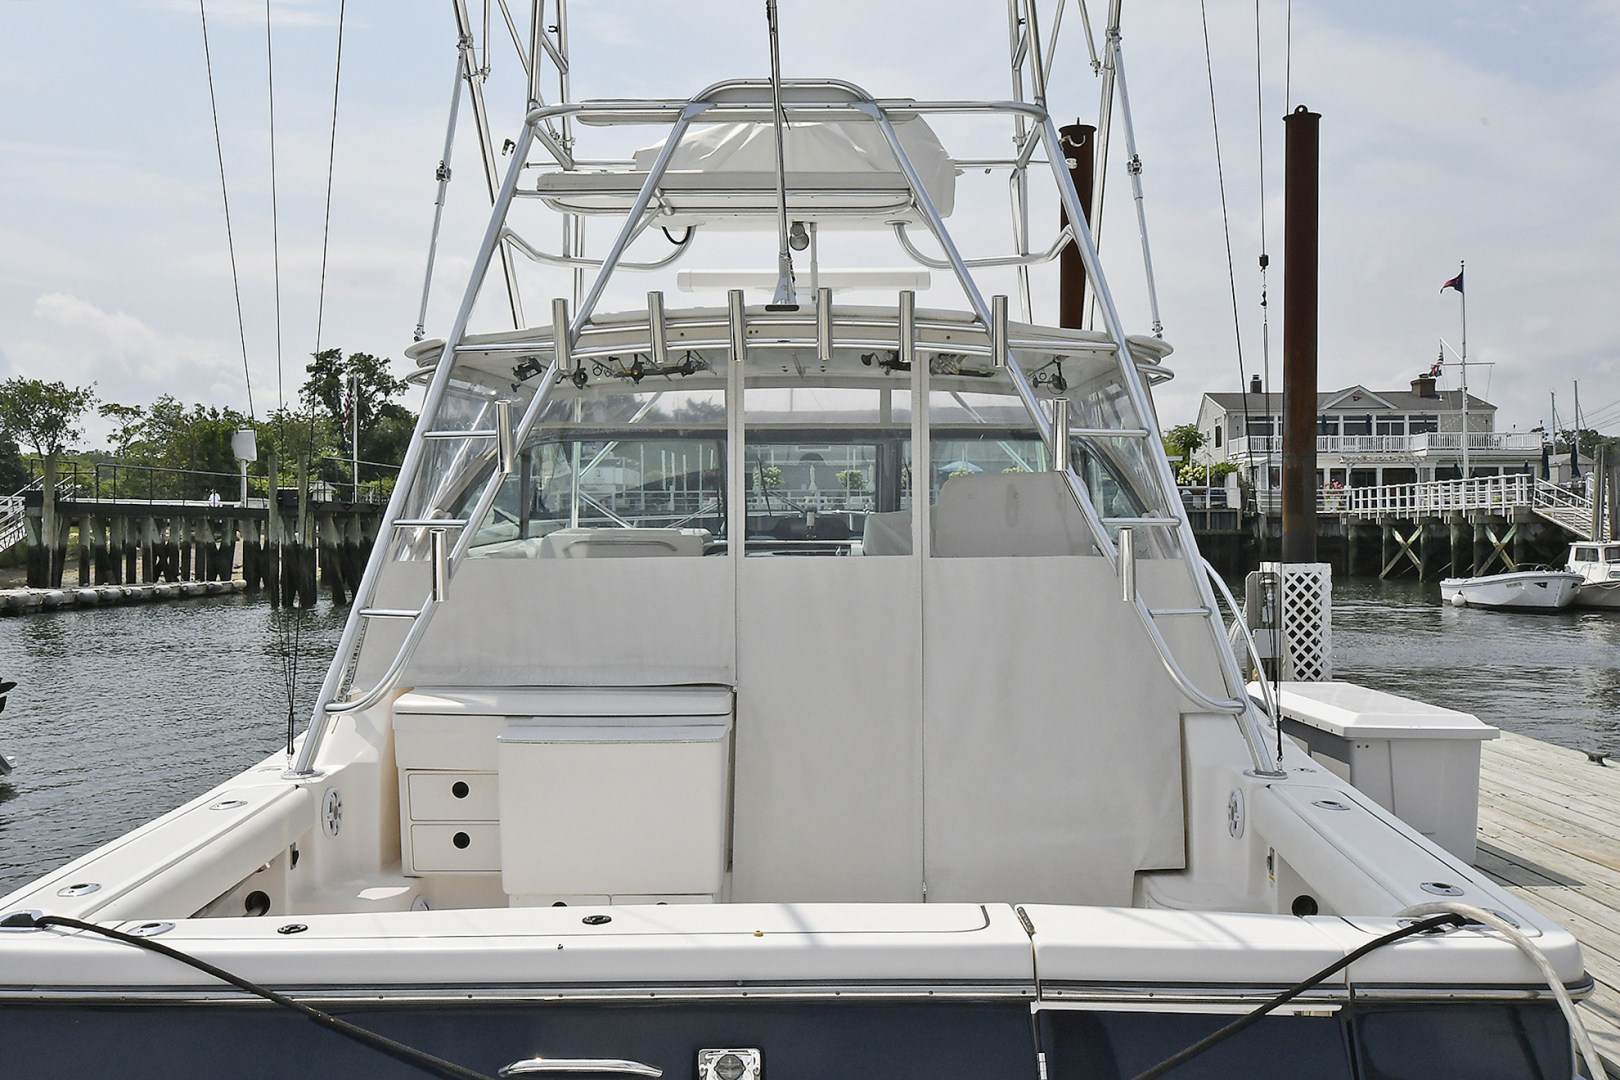 Tiara-3800 Open 2003-Catch 22 Oyster Bay-New York-United States-Cockpit-1224907 | Thumbnail